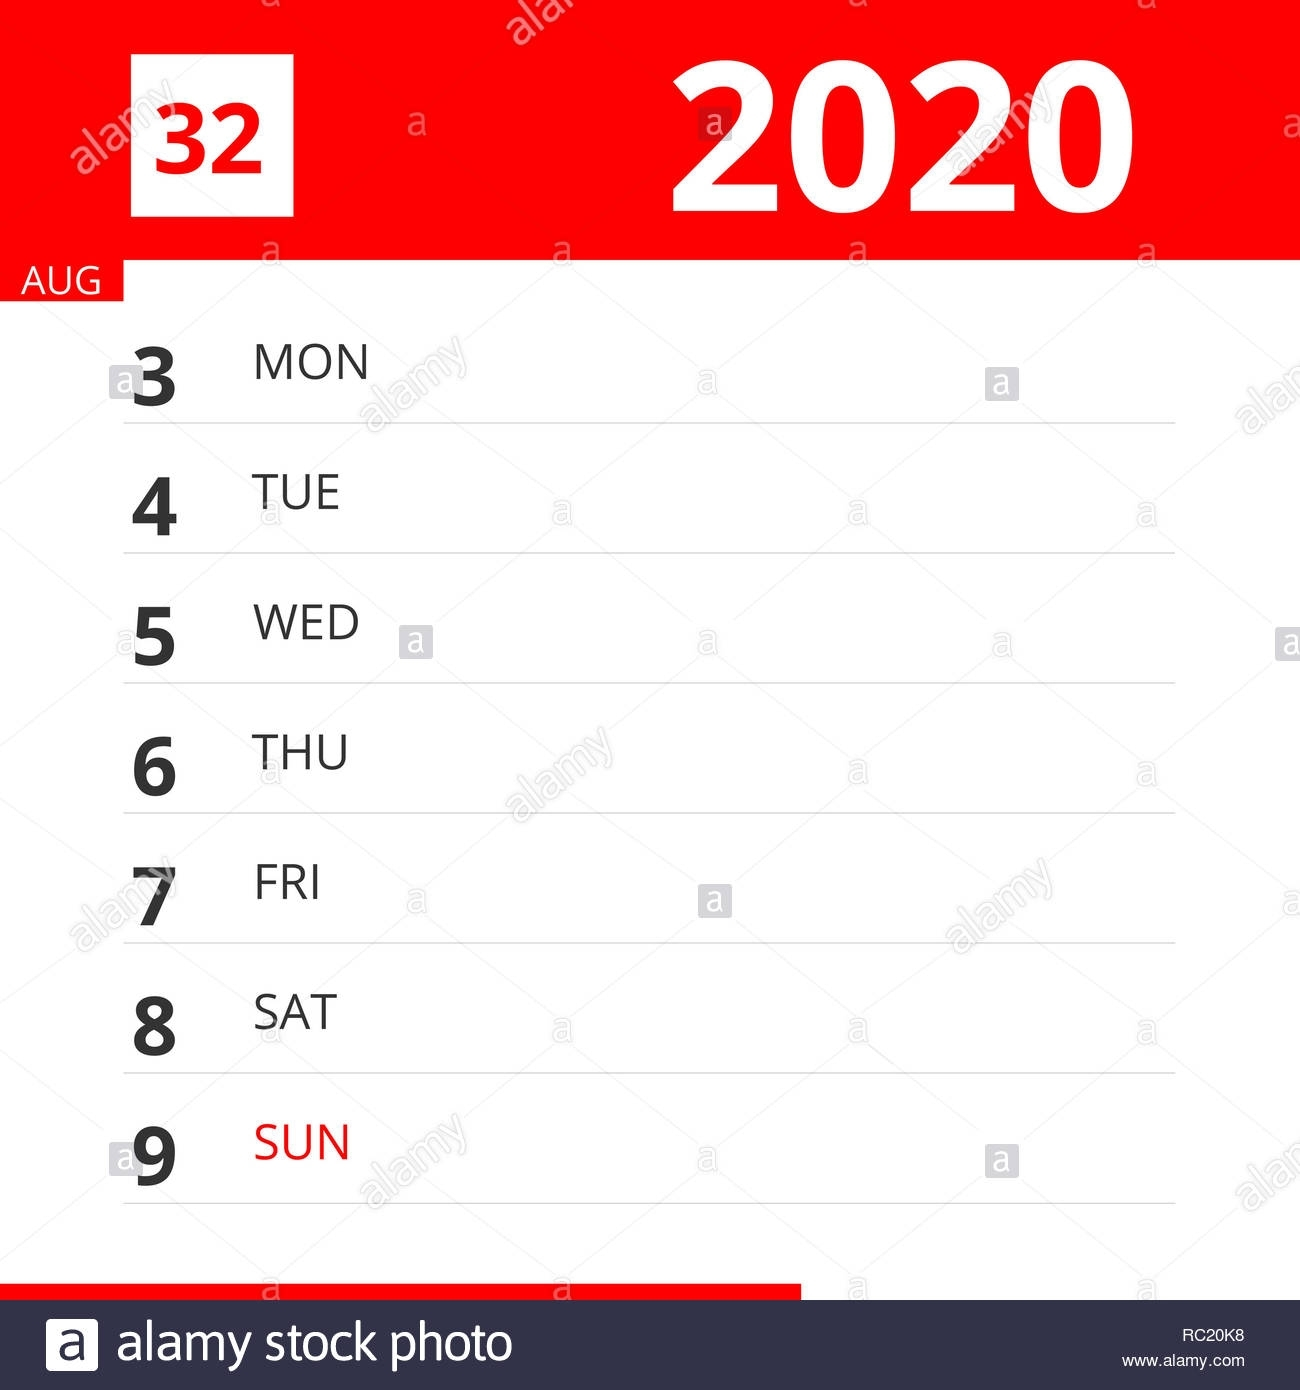 Calendar Planner For Week 32 In 2020, Ends August 9, 2020